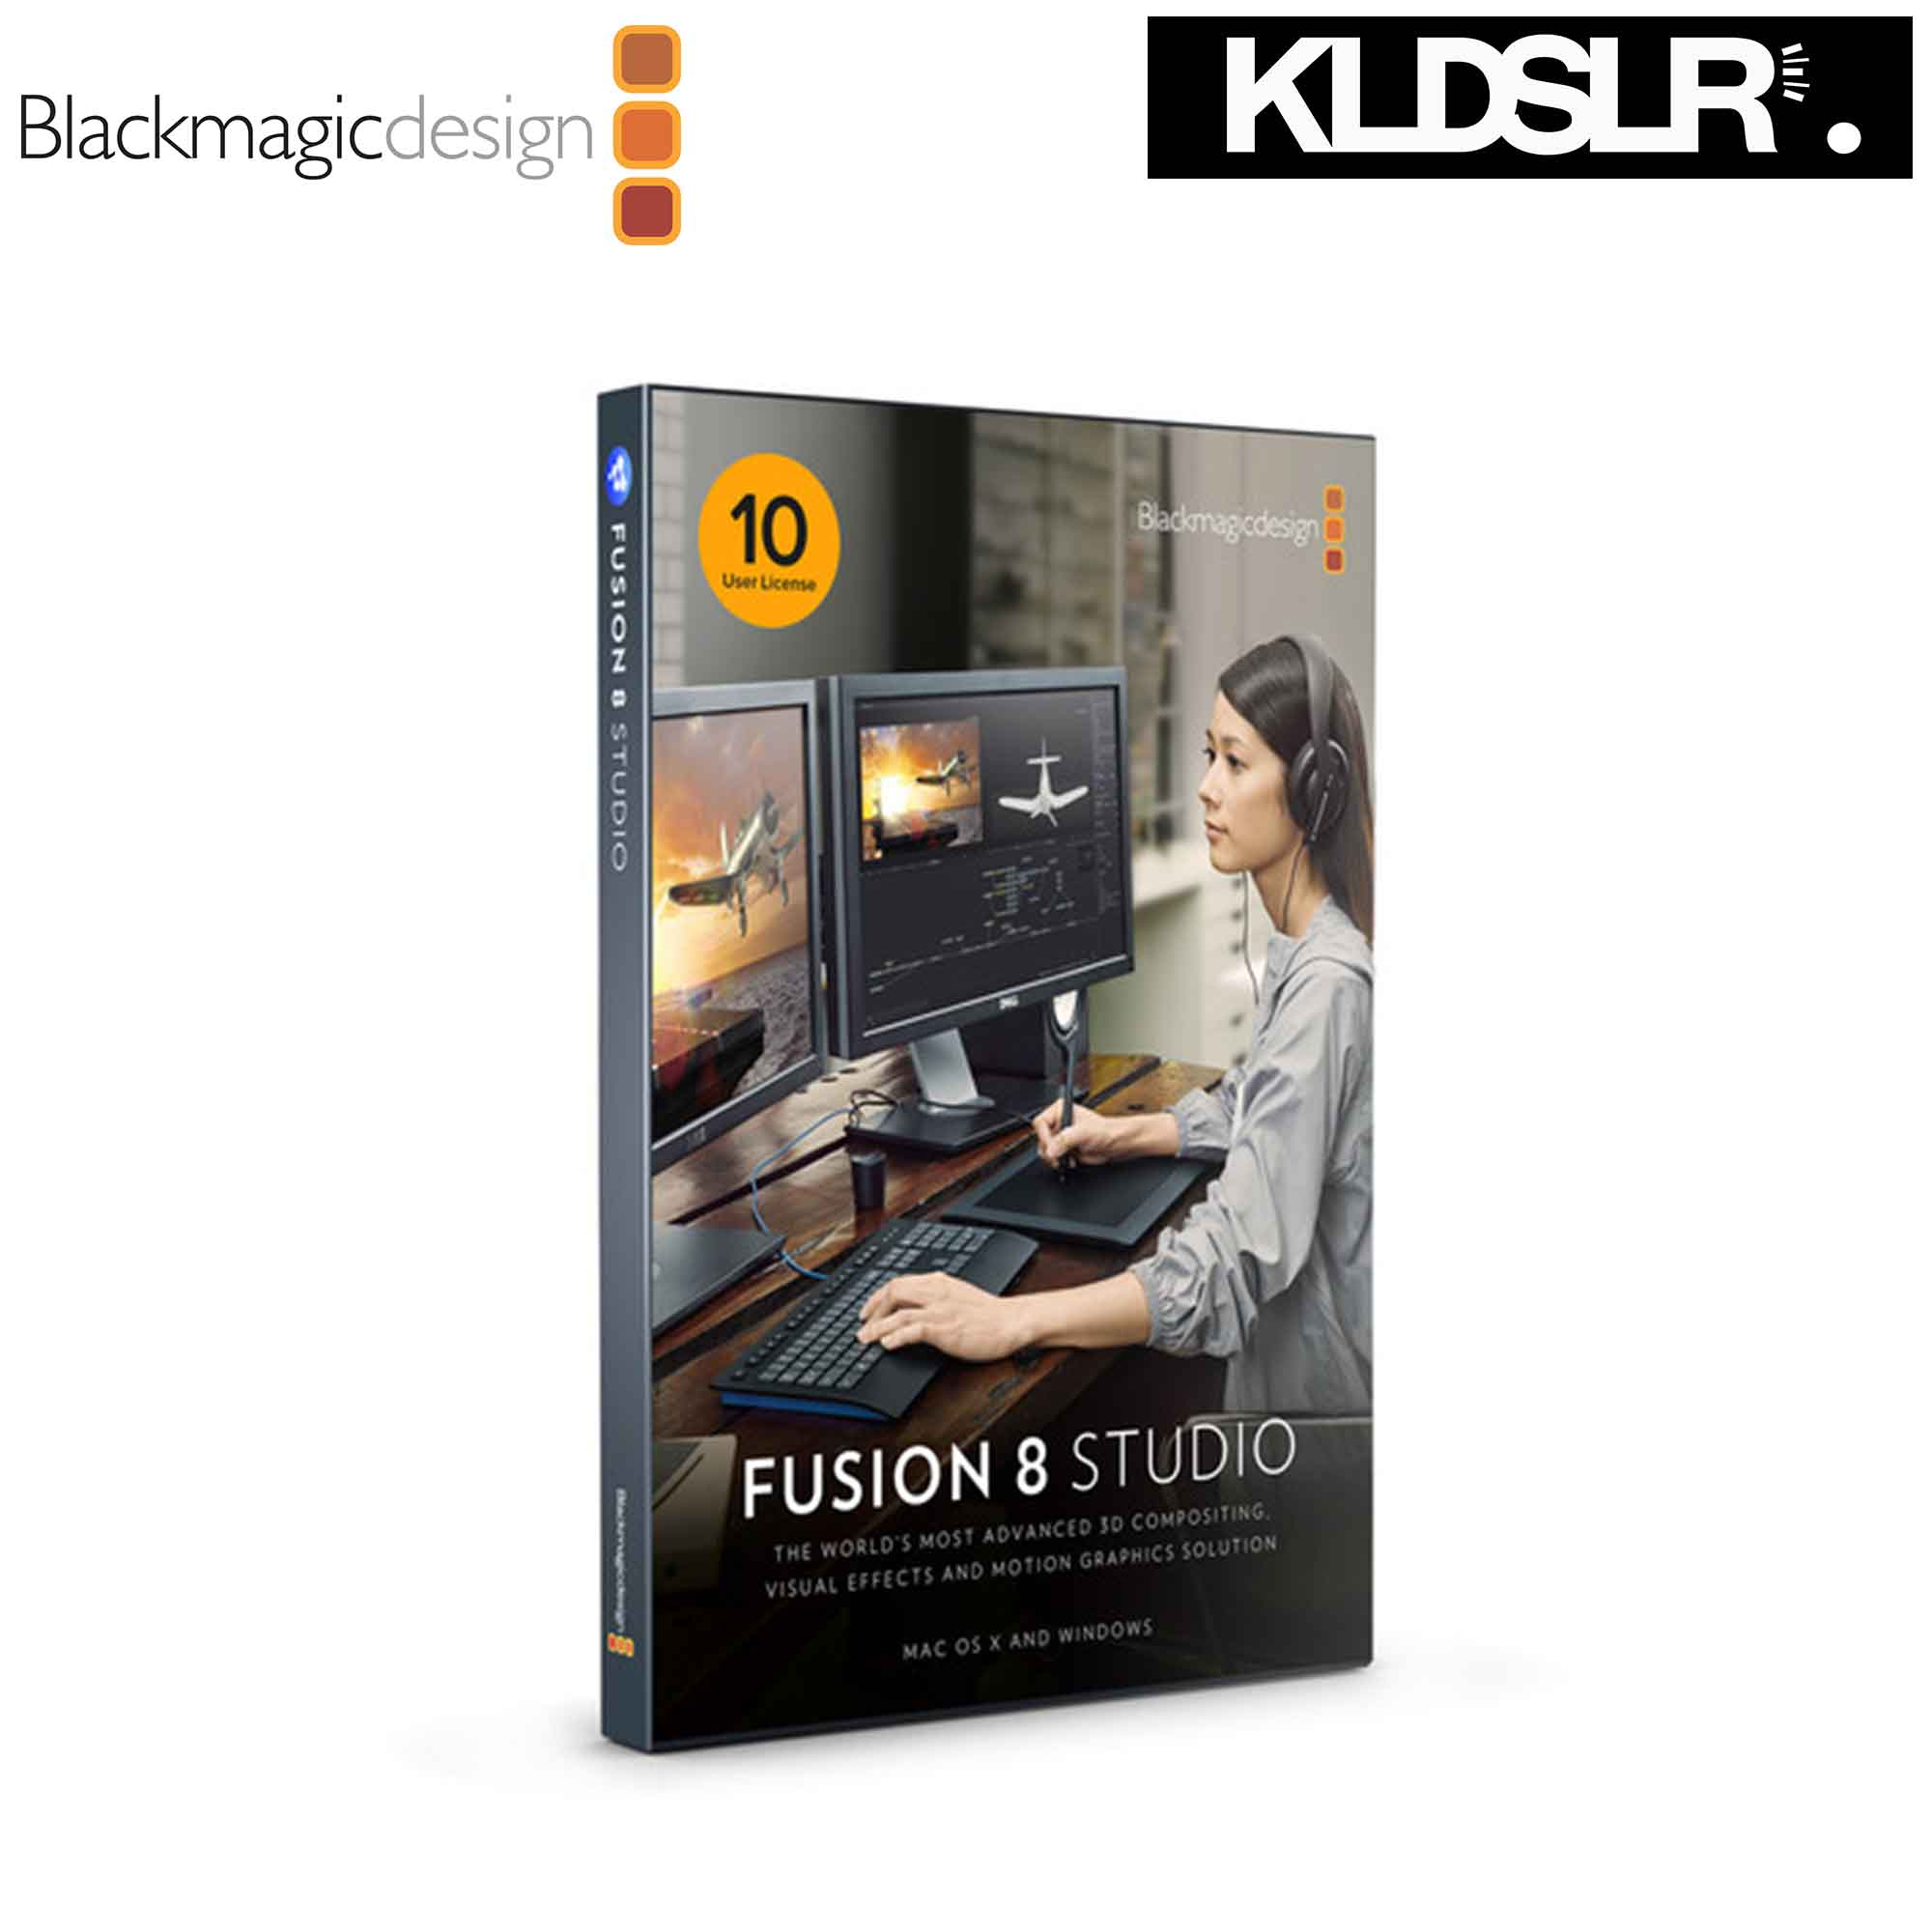 Blackmagic Design Fusion Studio MultiPack with 10-User License (Blackmagic Malaysia)